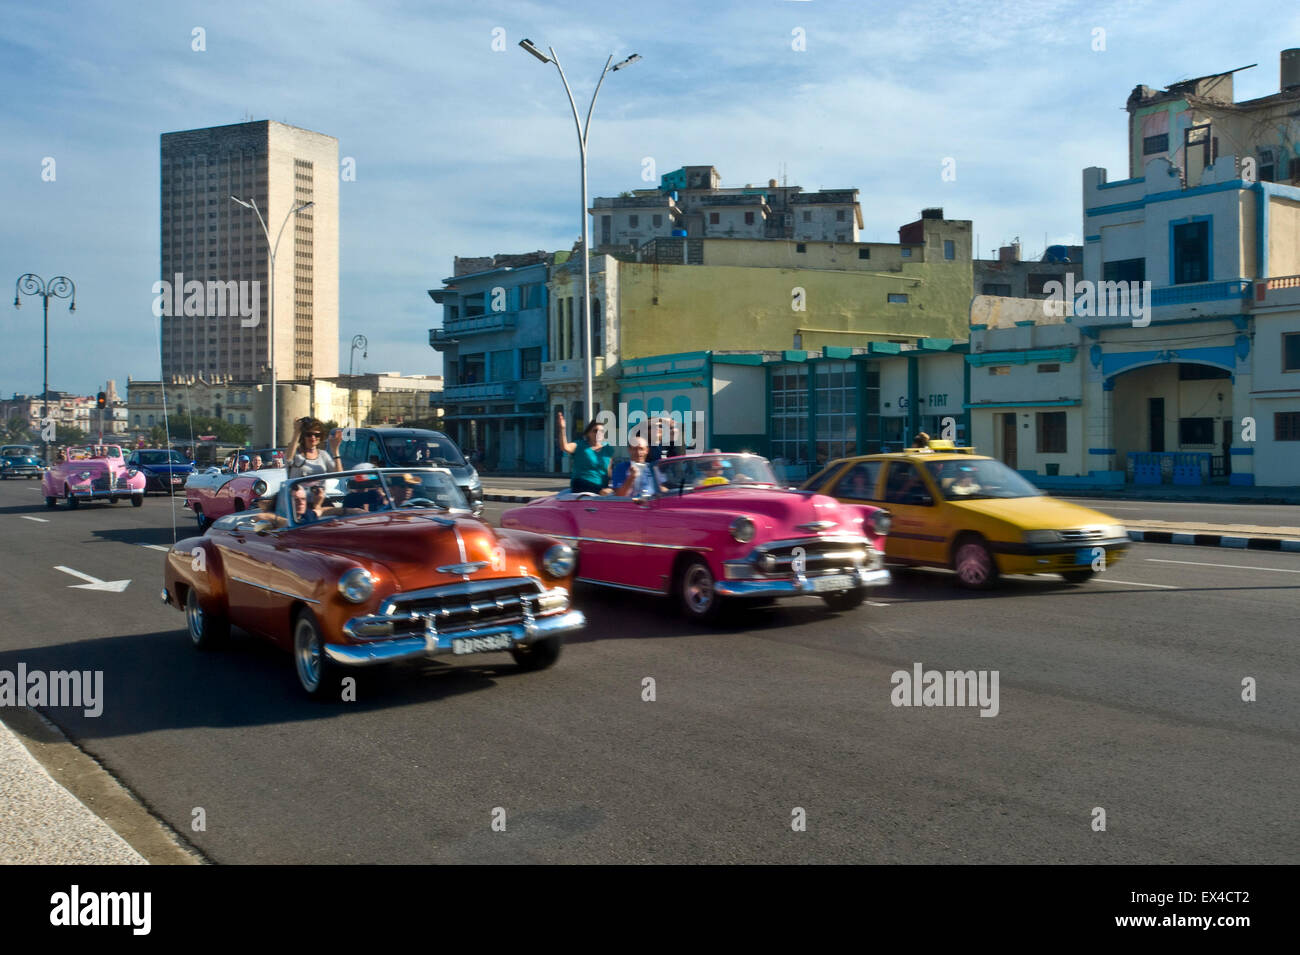 Horizontal view of classic old American cars driving along the Malecon in Havana, Cuba. - Stock Image